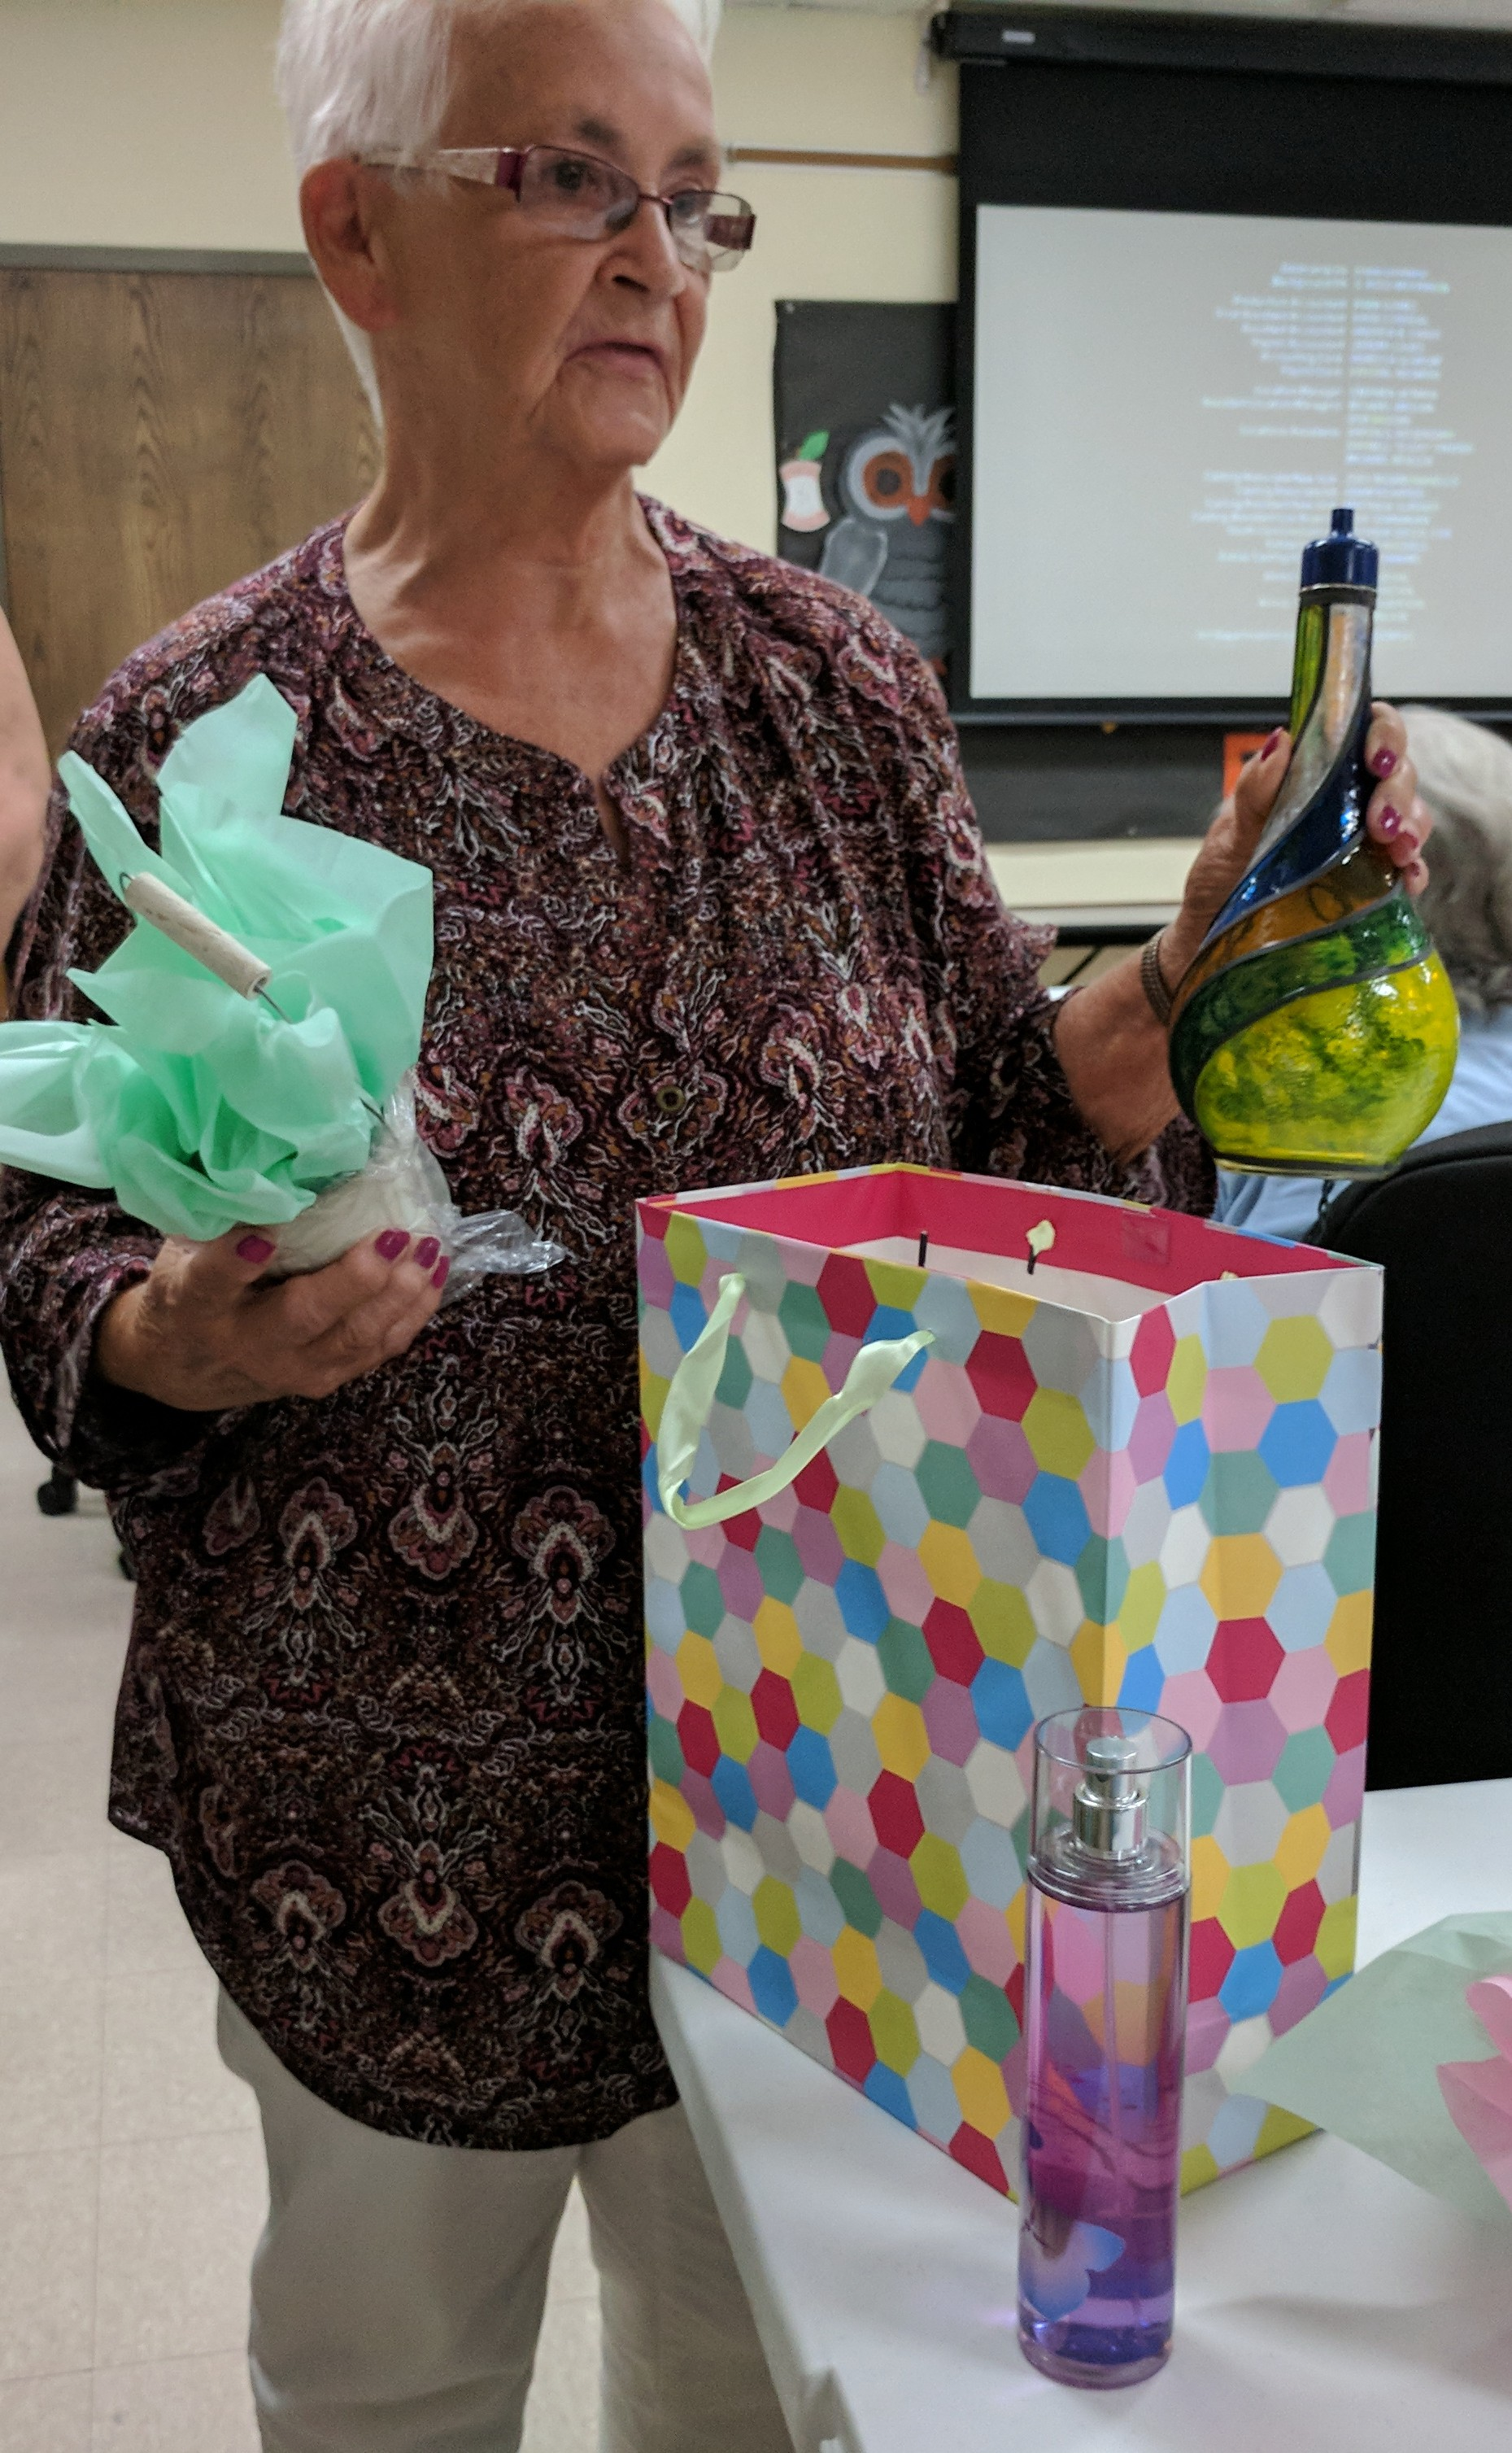 Congratulations to Margaret Conway for winning some great items at the September Ladies Night Out event!